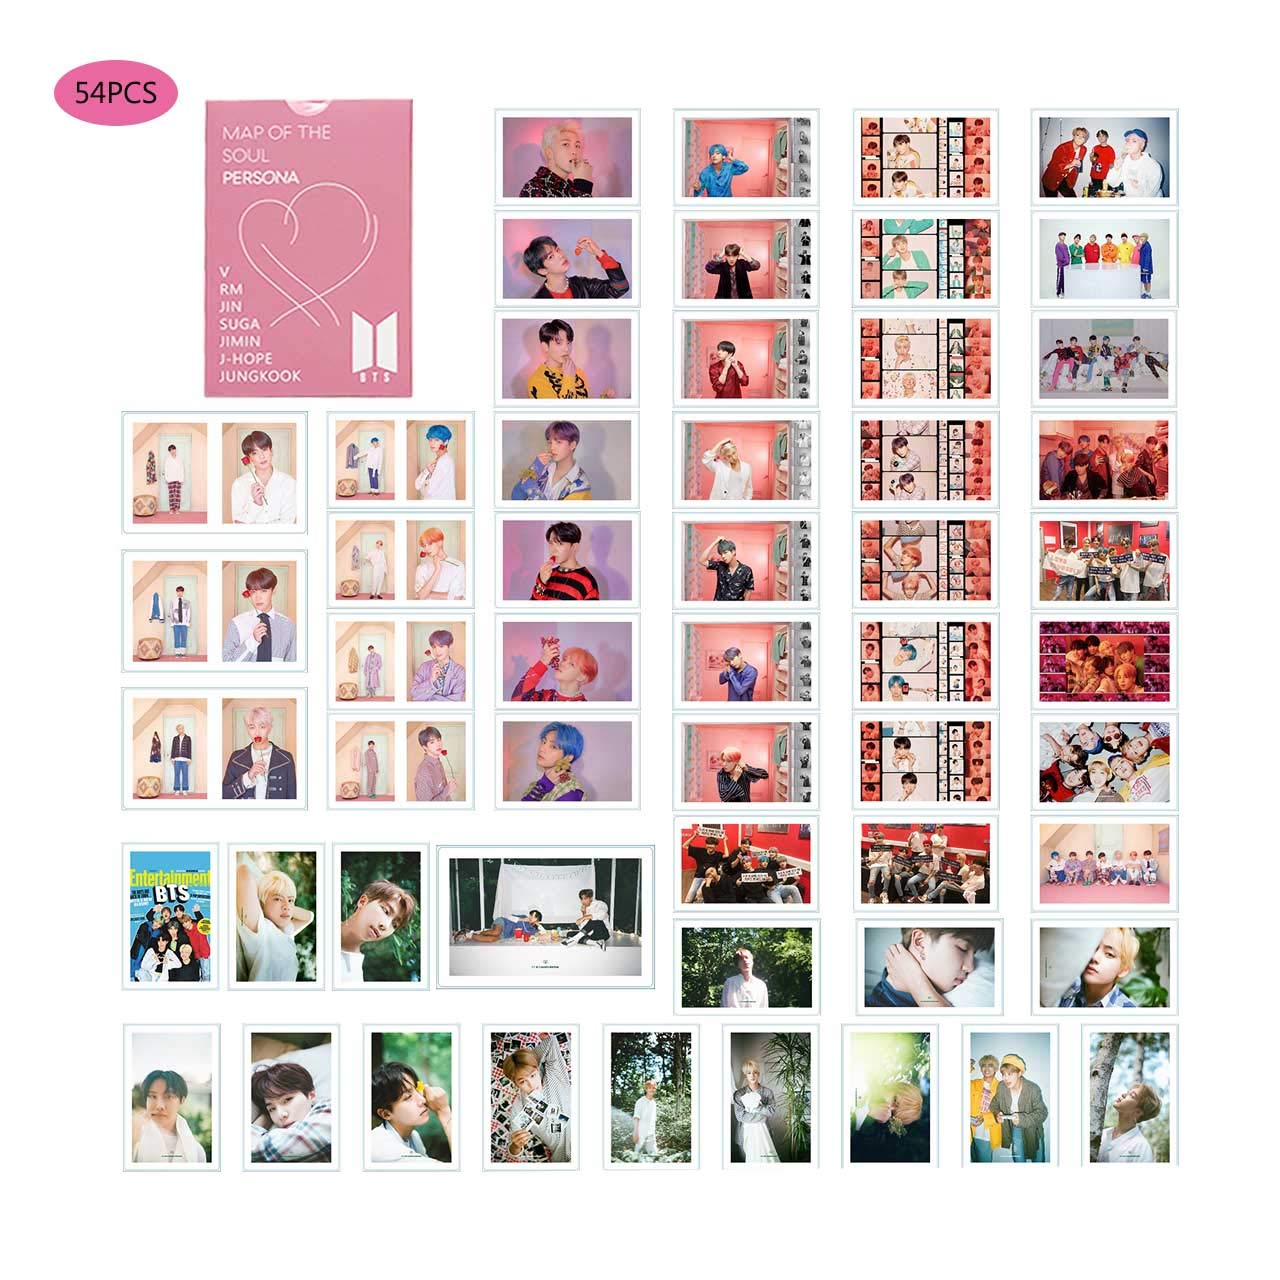 Álbum de cartas BTS MAP OF THE SOUL Pesona New BTS LOMO y ...